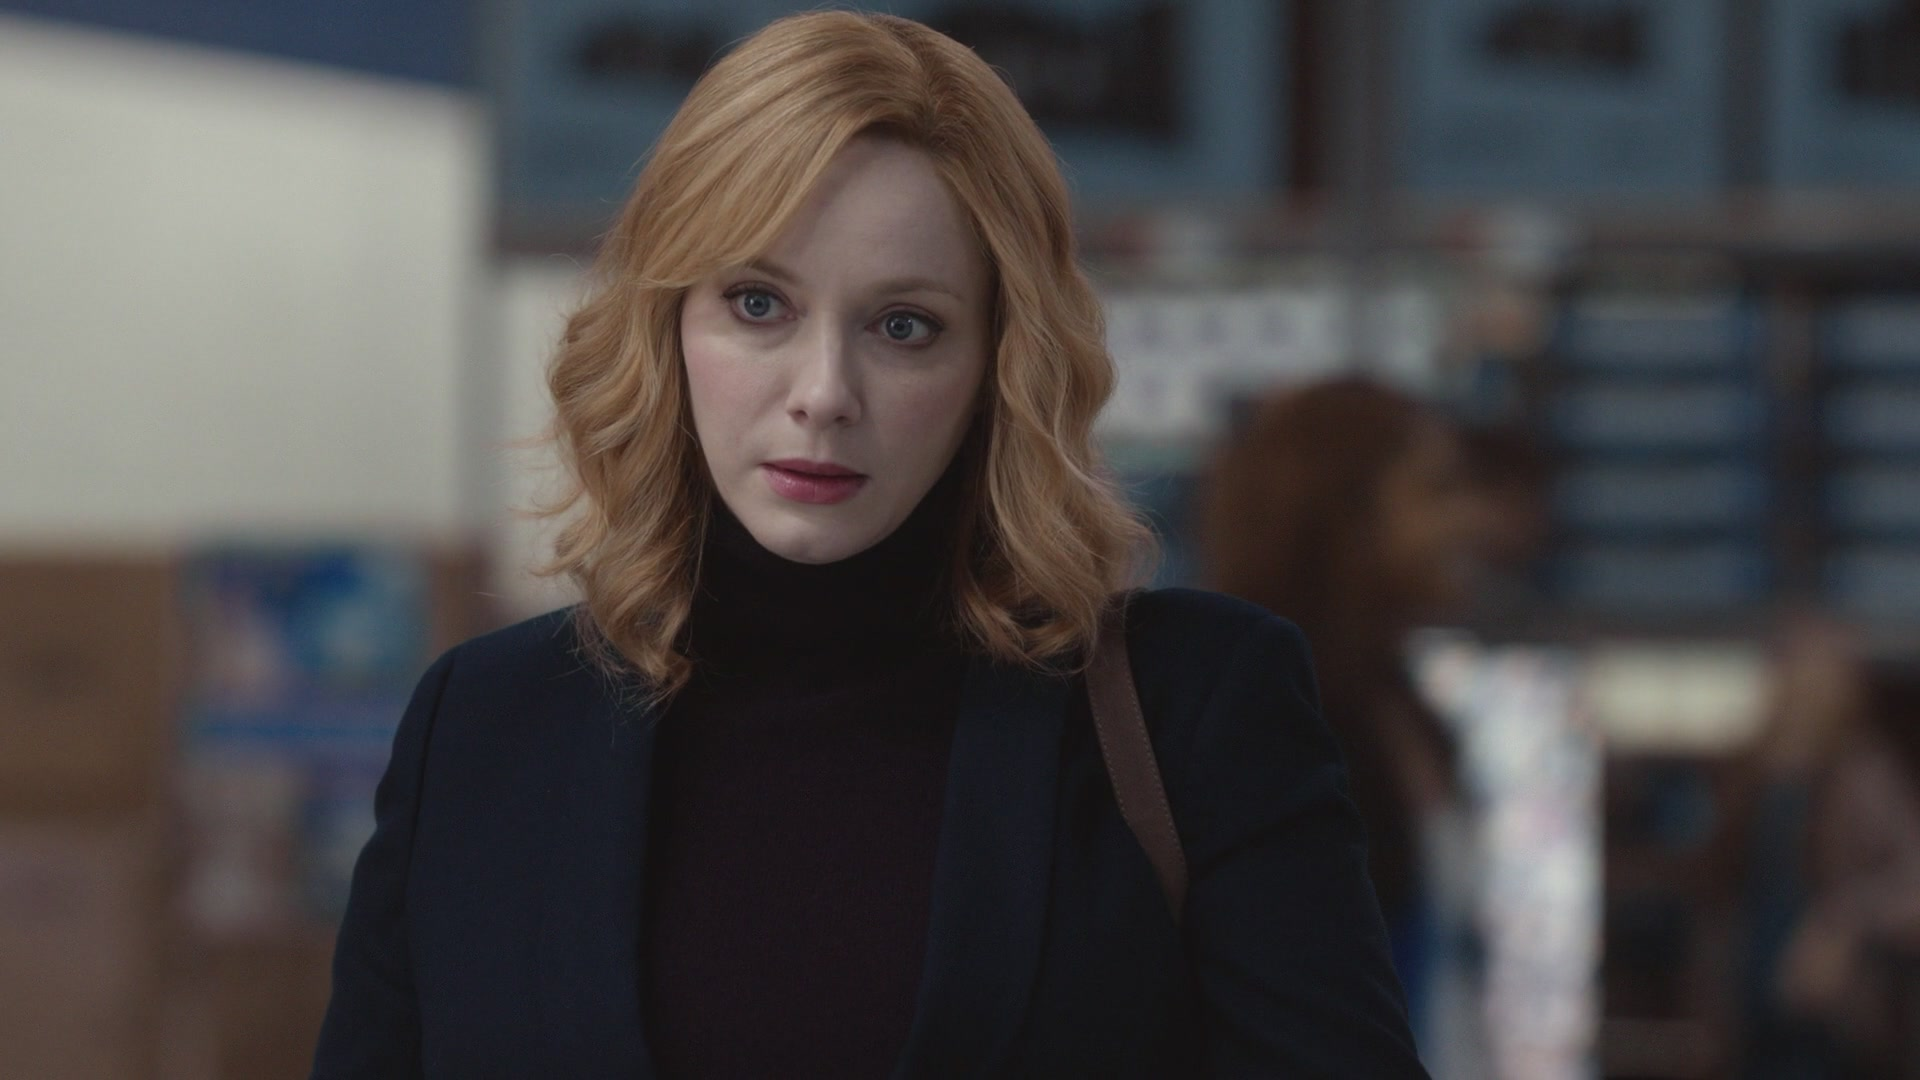 A Christina Hendricks Series Was Just Added To Netflix